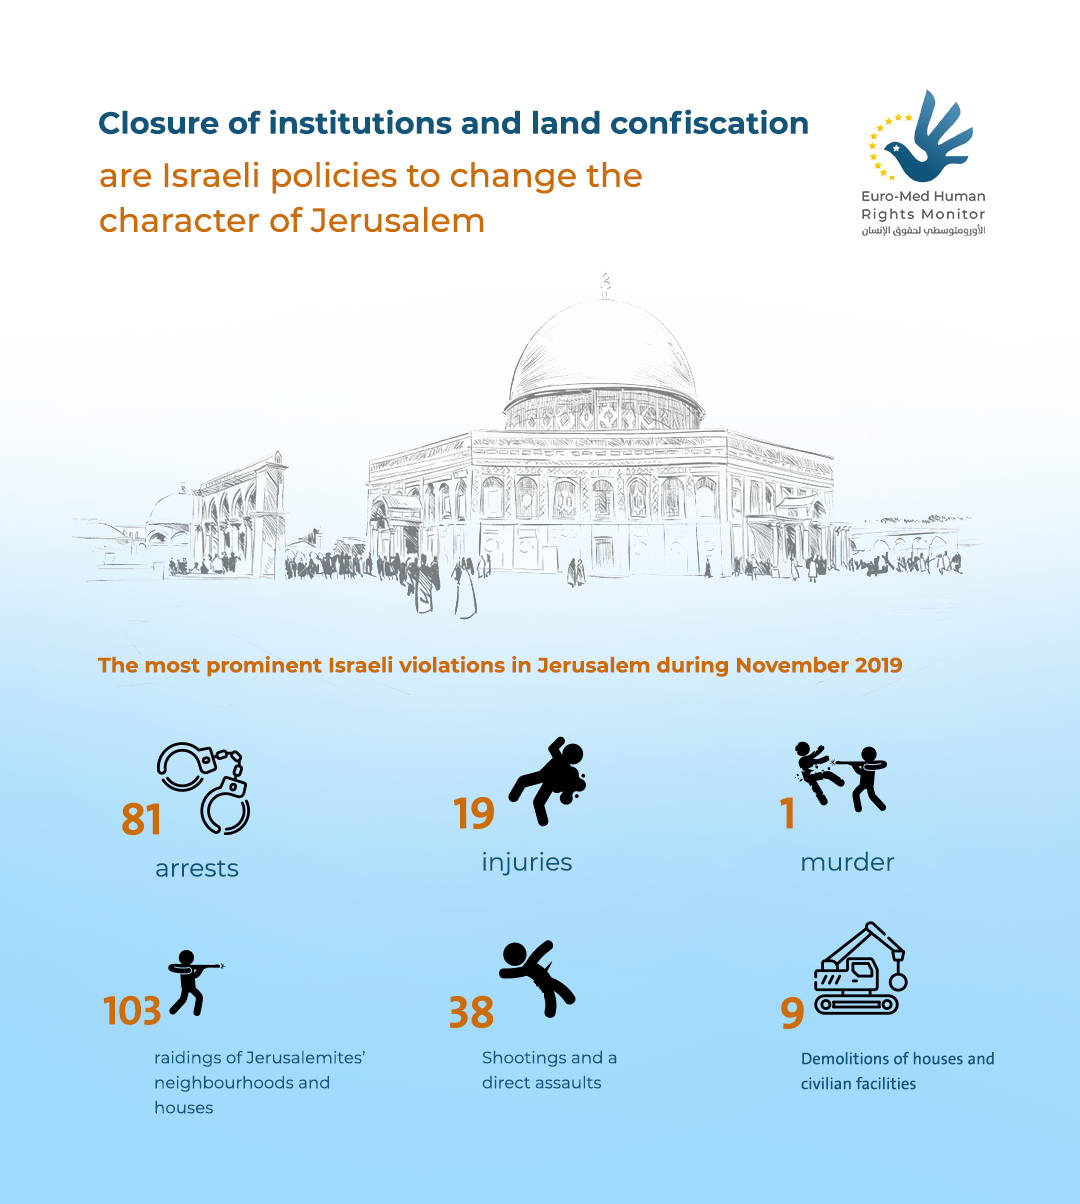 Closure of institutions and land confiscation are Israeli policies to change Jerusalem Identity